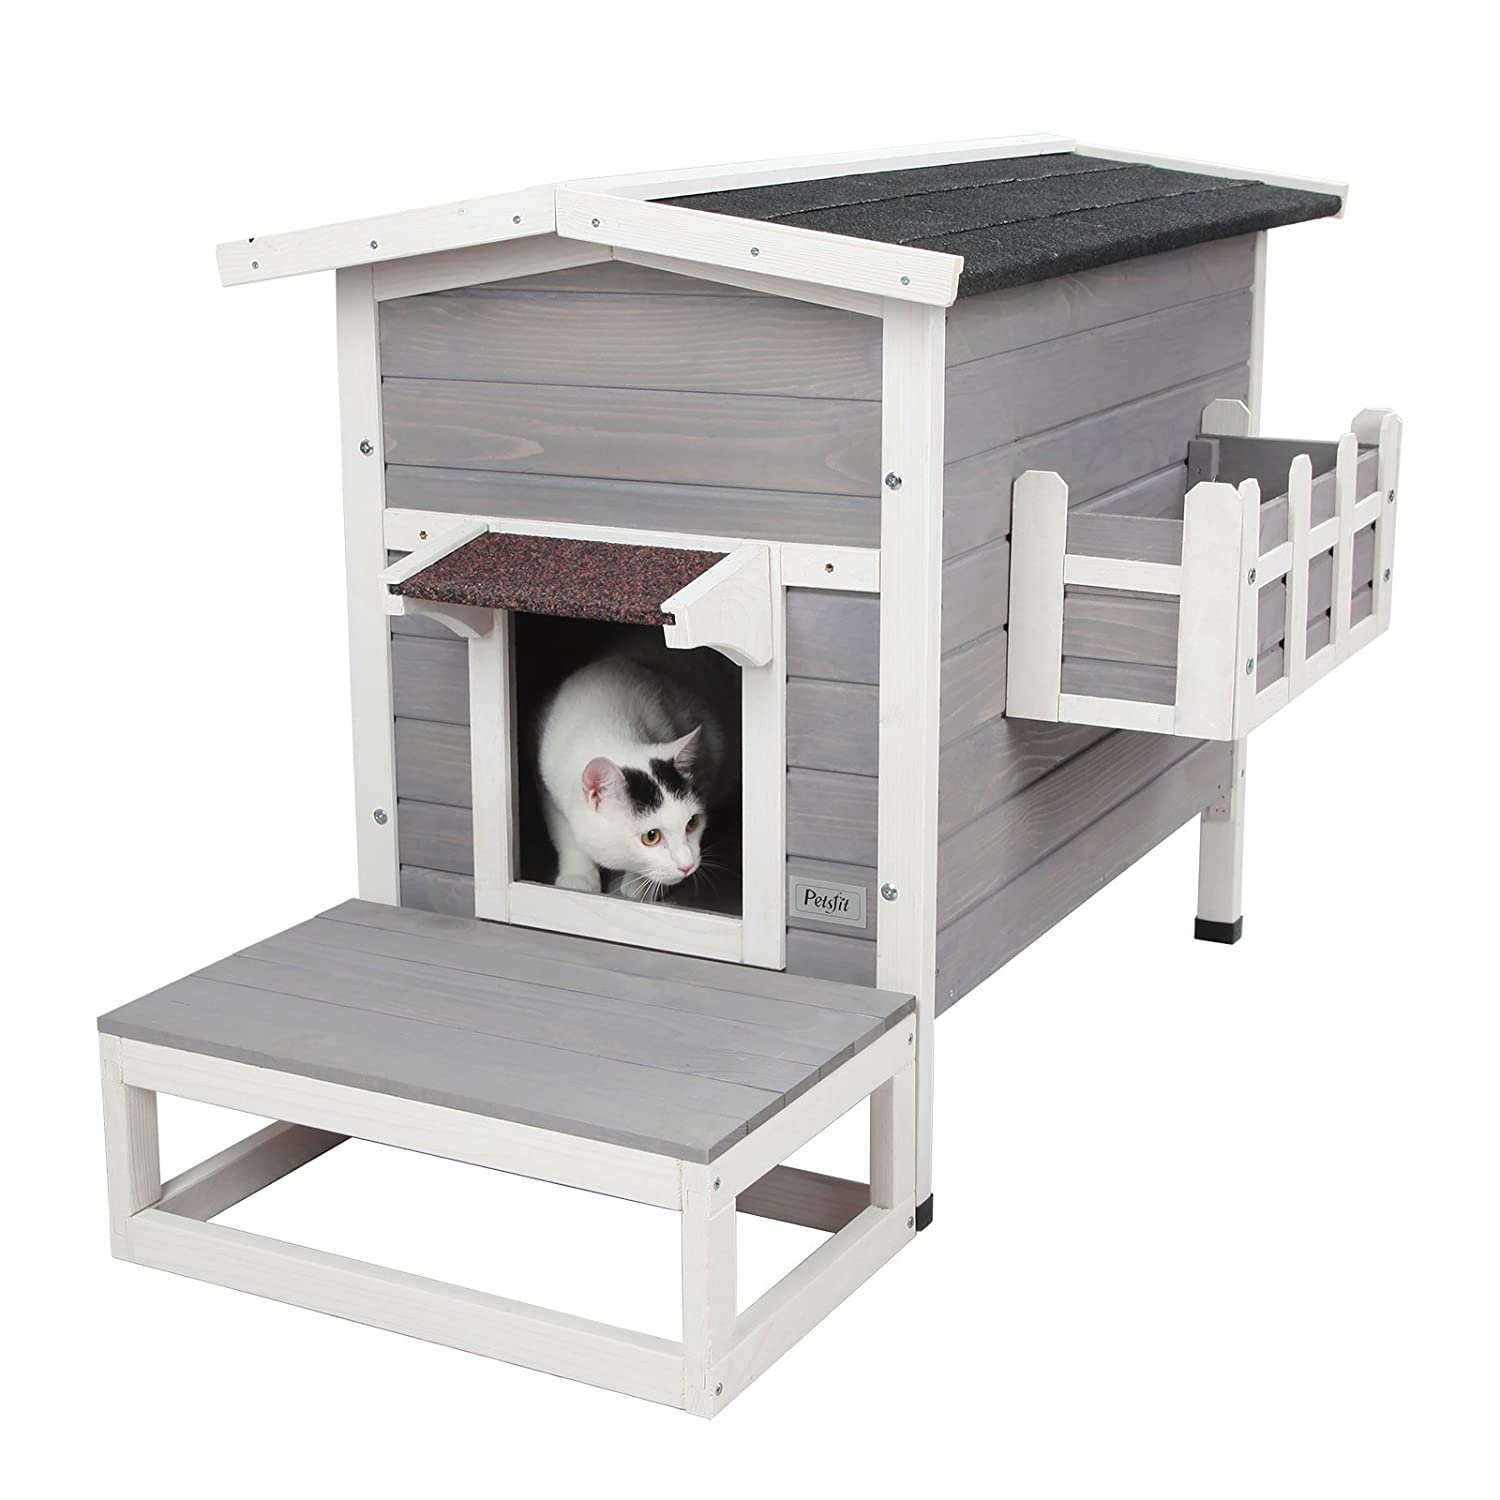 "Petsfit Weatherproof Outdoor Cat Shelter/House/Condo with Stair 27.5"" Lx17.5 Wx20 H"